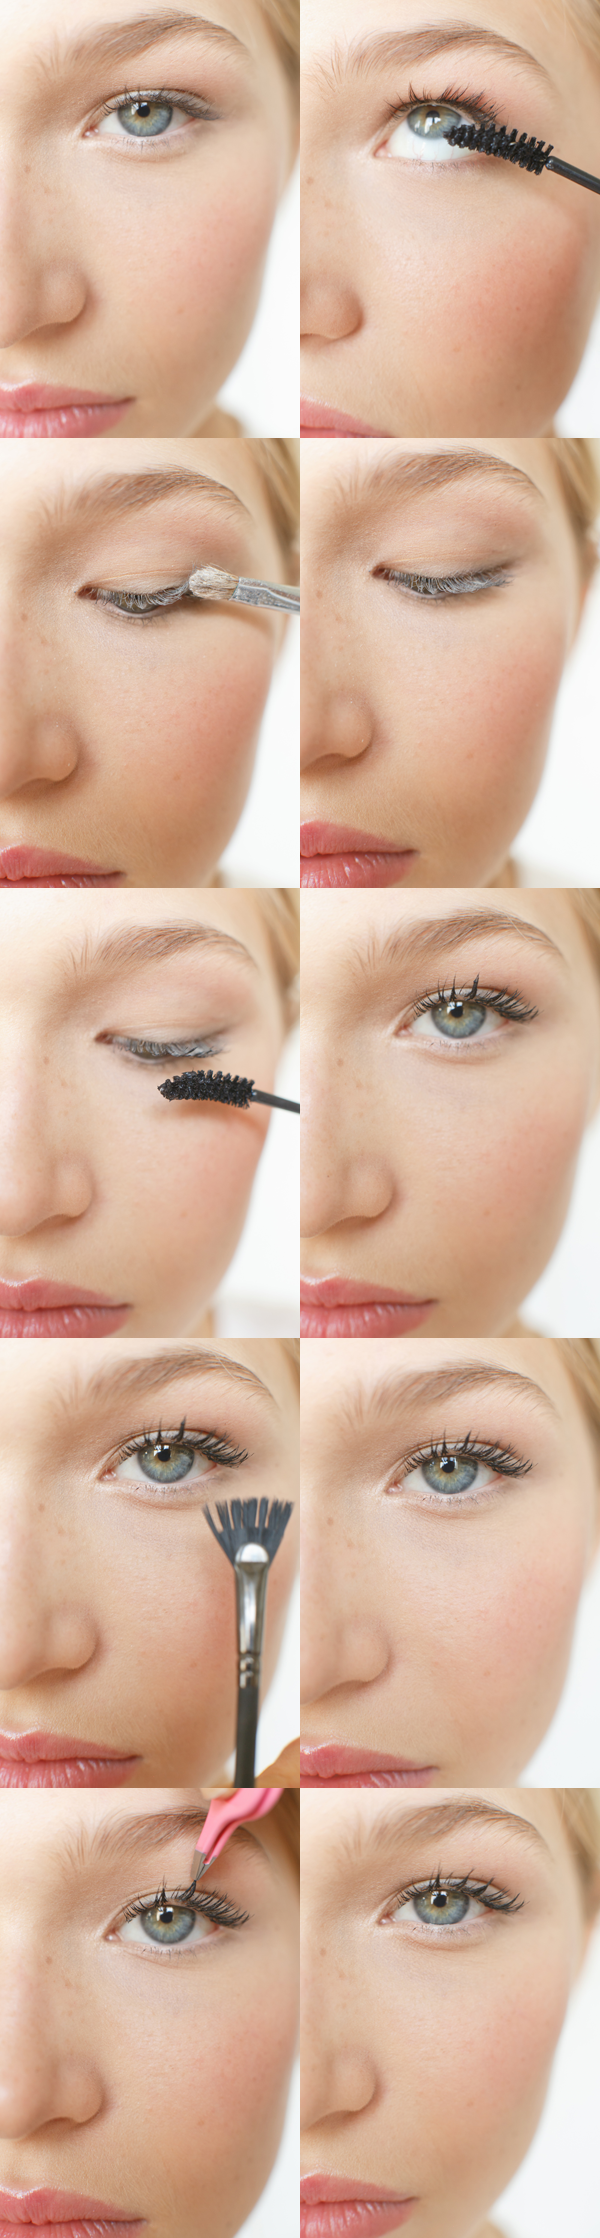 WEDDING DIY: HOW TO FAKE THICKER LASHES TUTORIAL